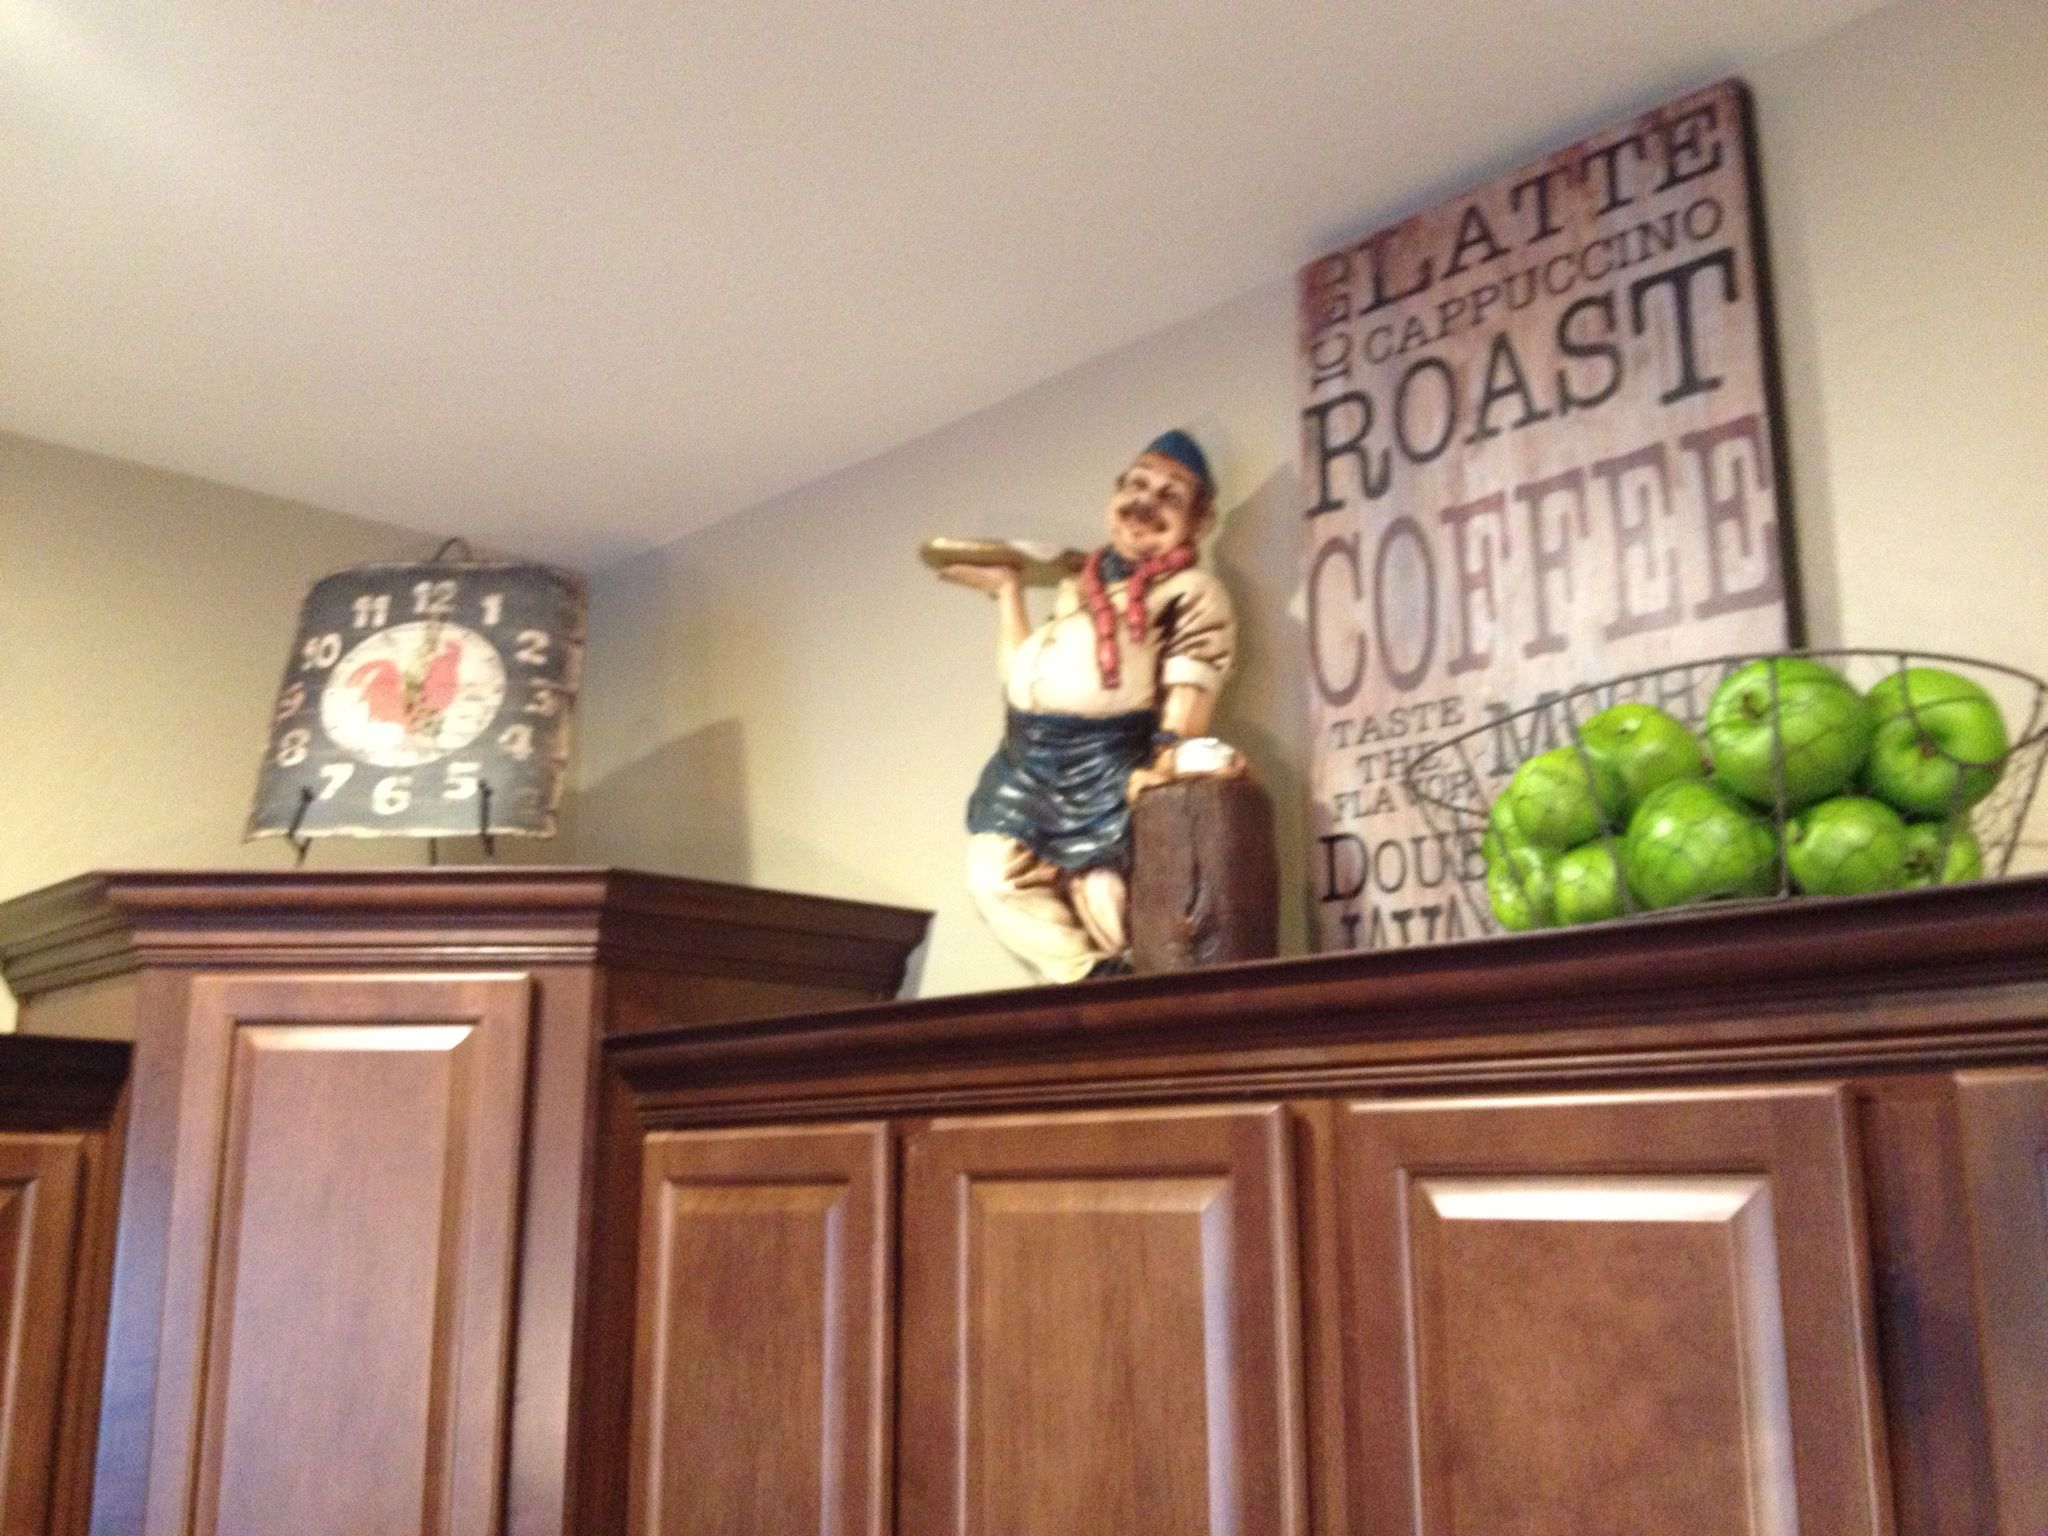 Ideas For Decorating Above Kitchen Cabinets Above Cabinet Decor I Want To Make That Cute Coffee Sign